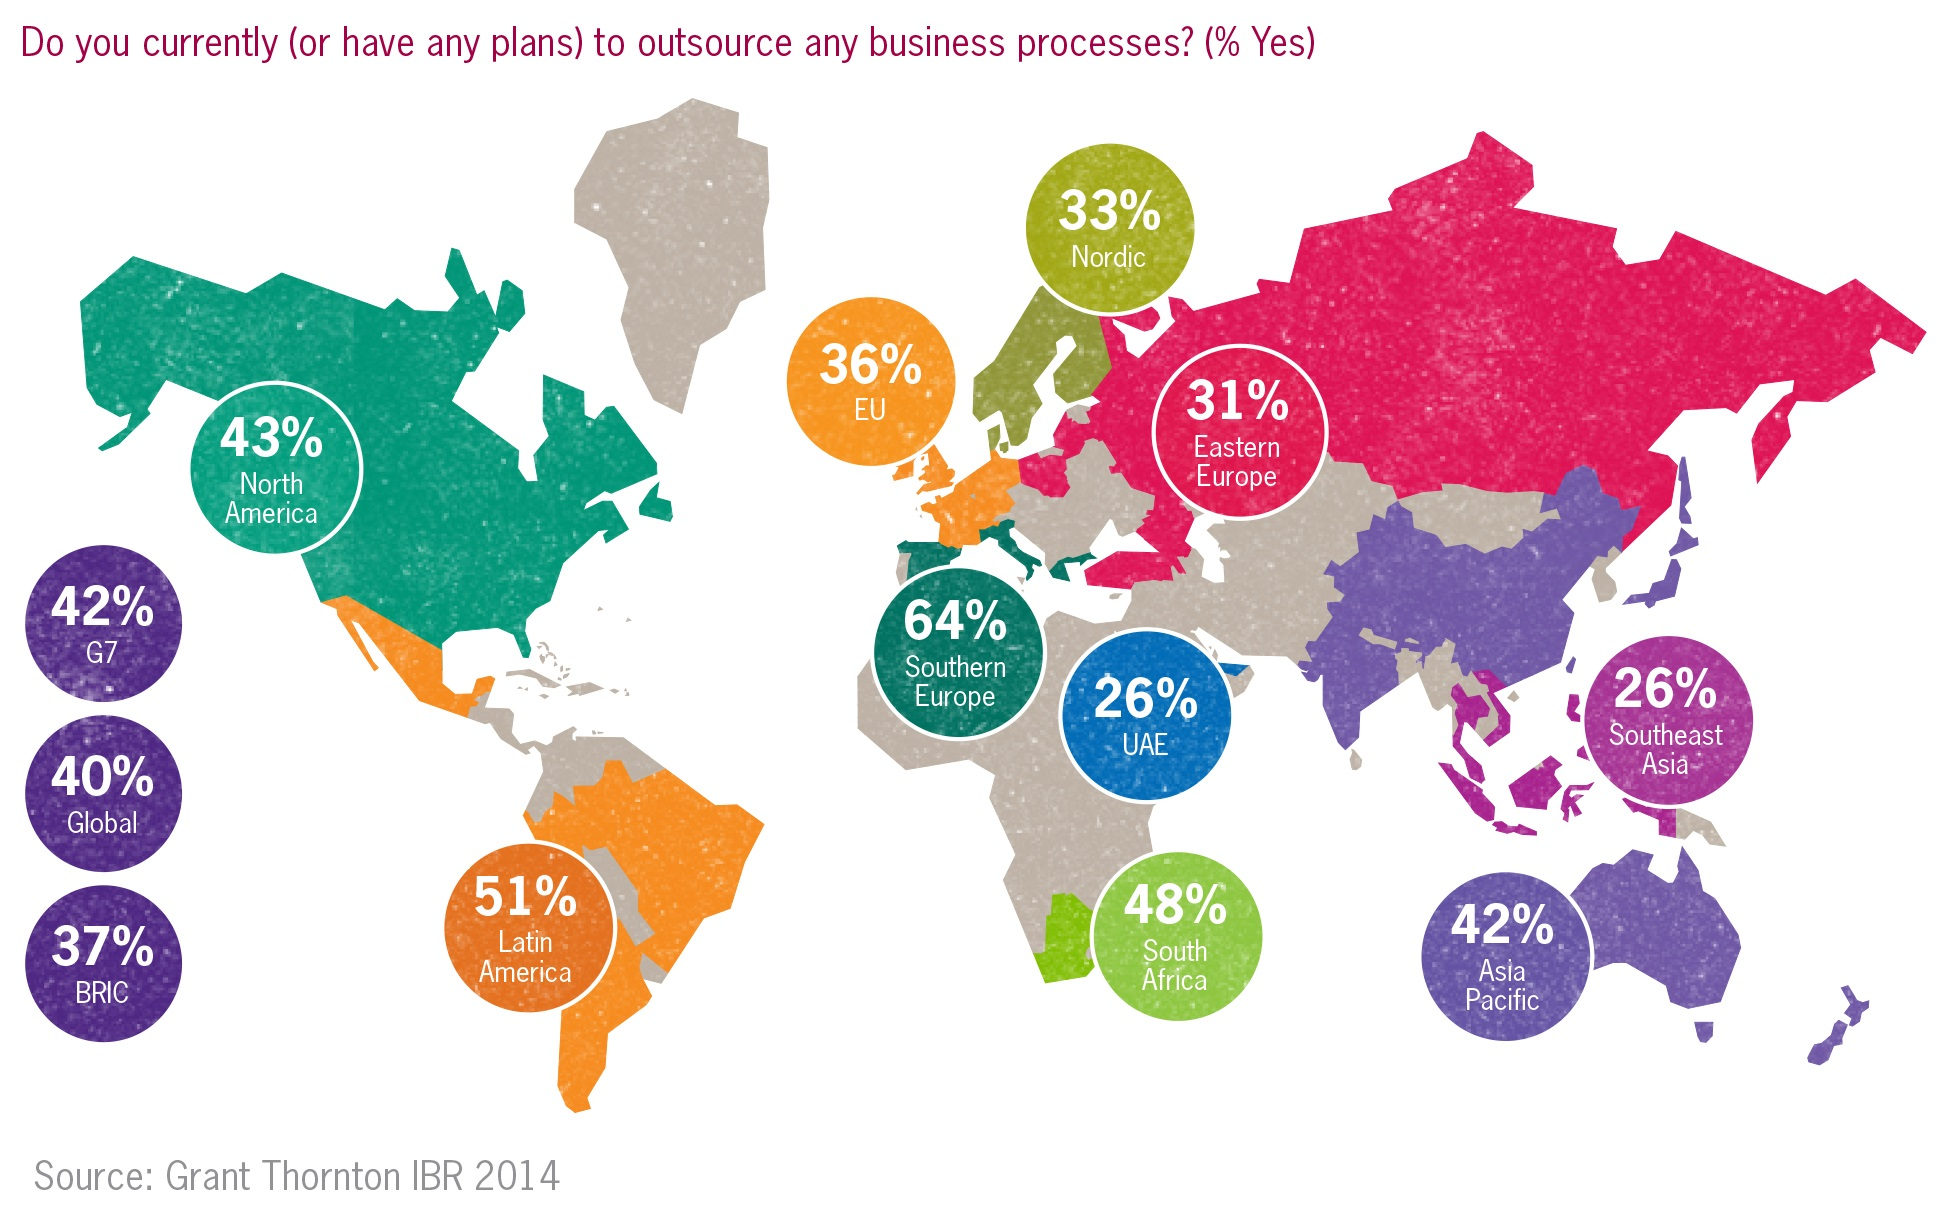 IBR Grant thornton global map businesses plan to outsource processes